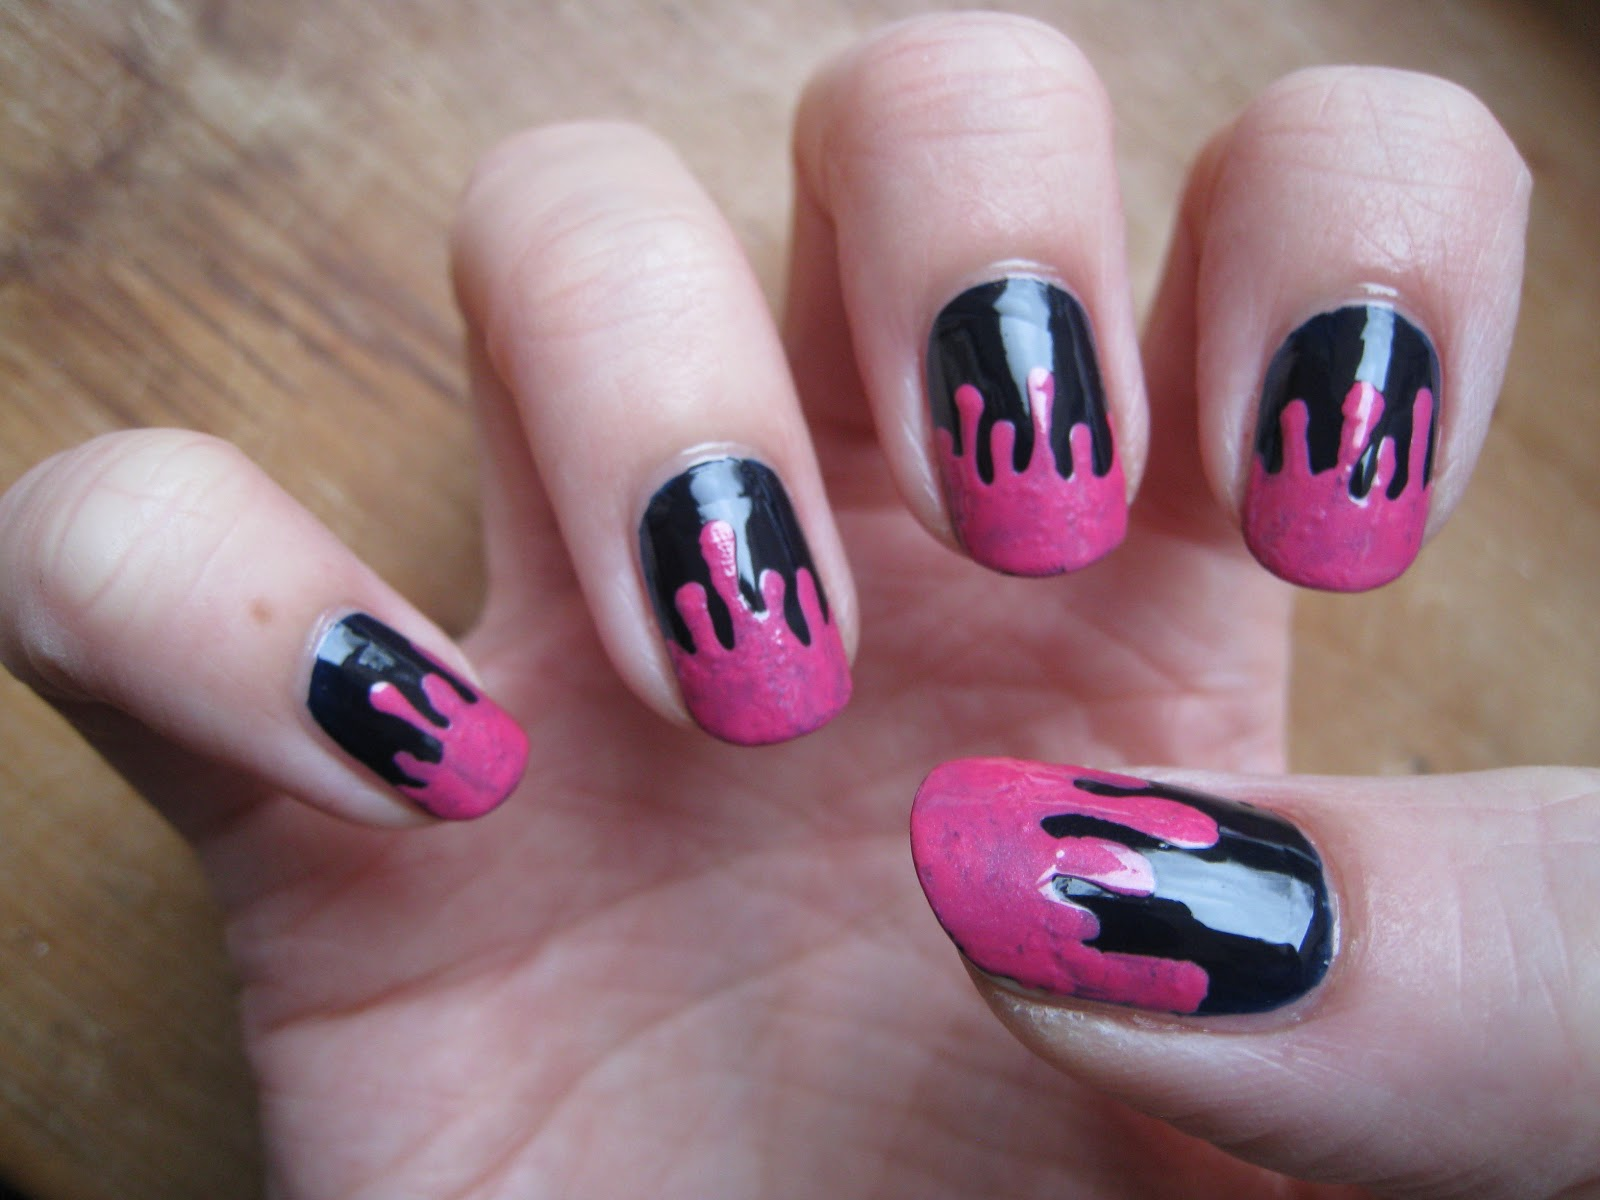 Naily Perfect Pink Drippy Nails